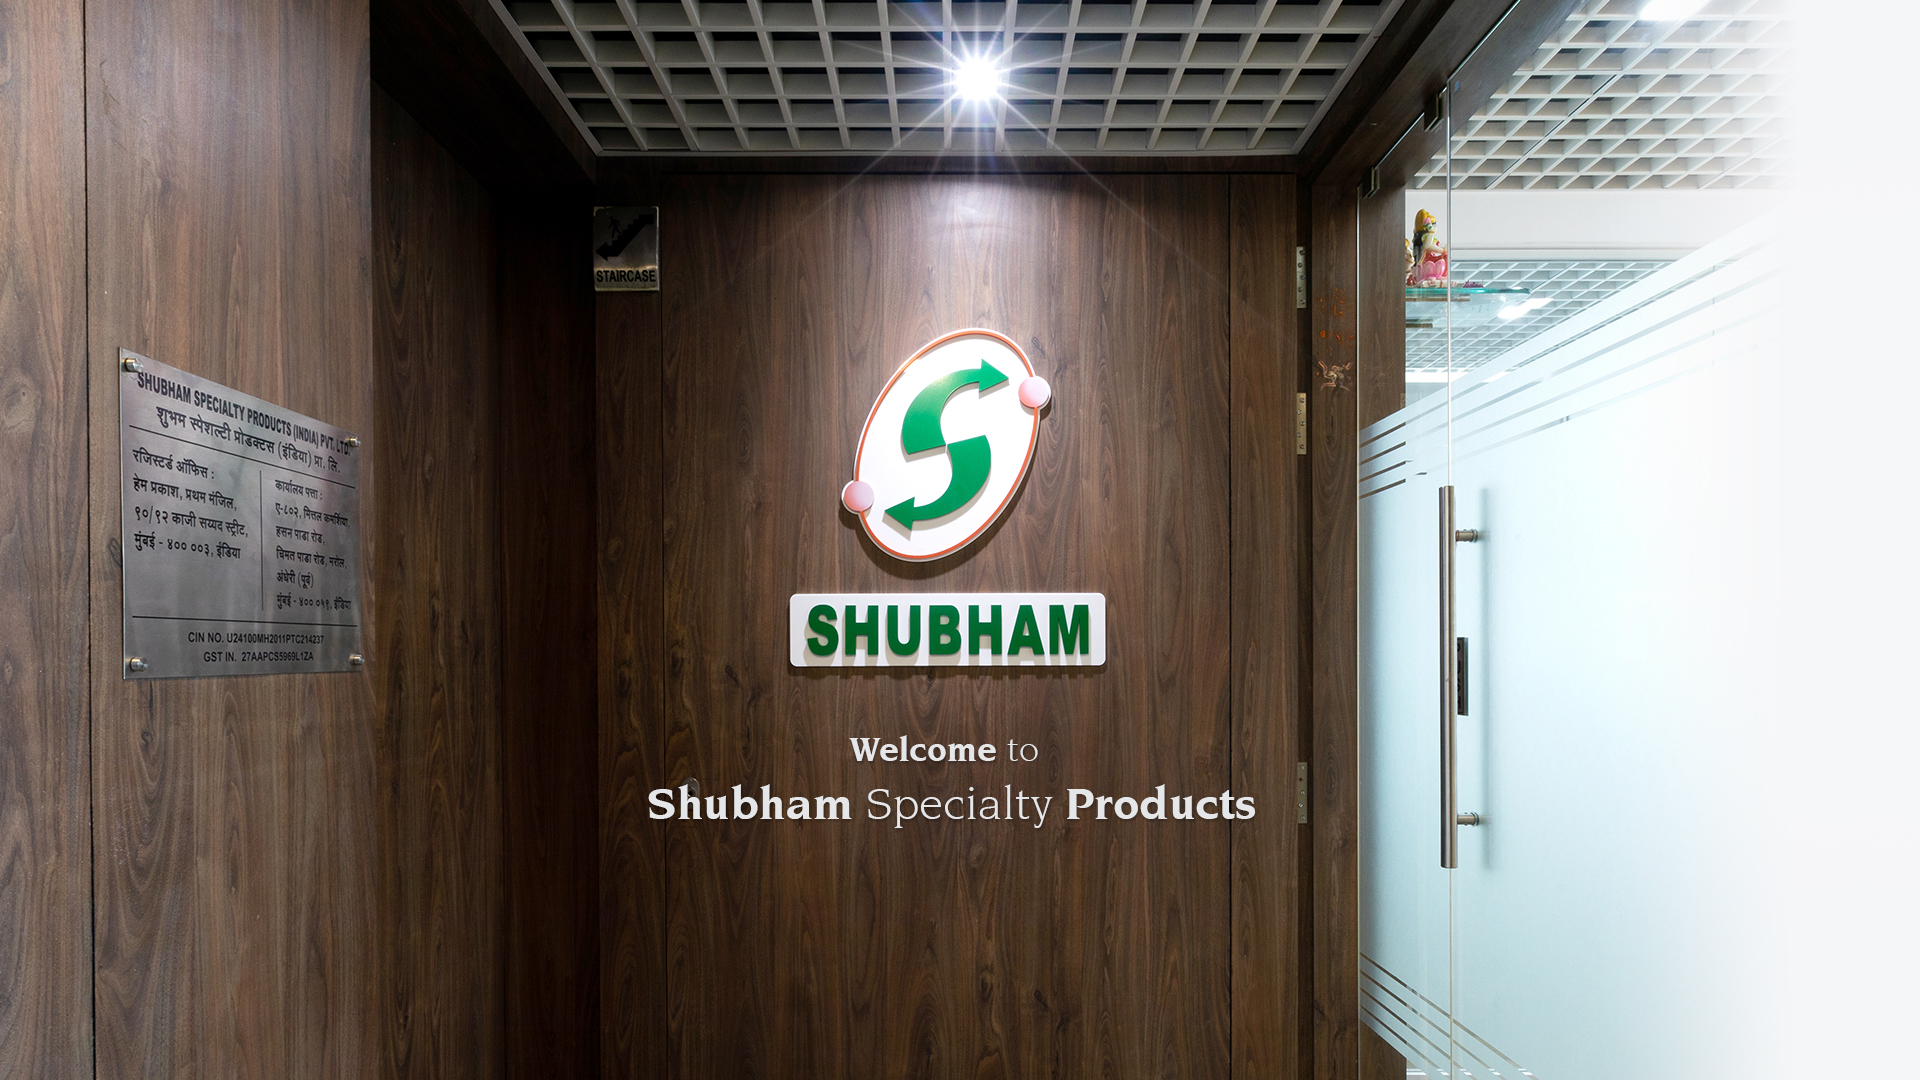 Welcome-to-Shubham-Specialty-Products-2